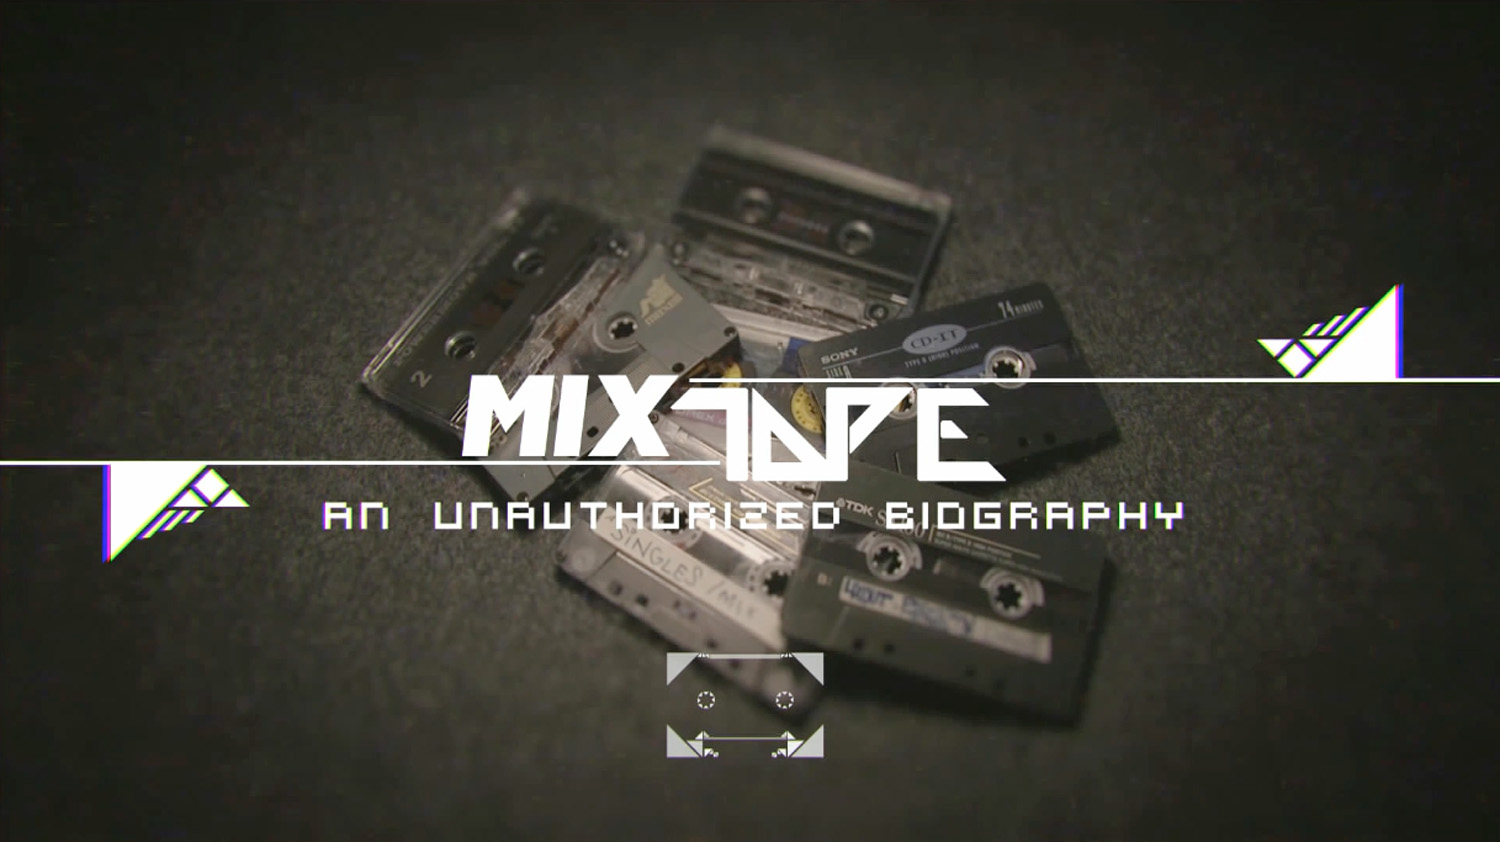 mixtape-an-unauthorized-biography_primary.jpg